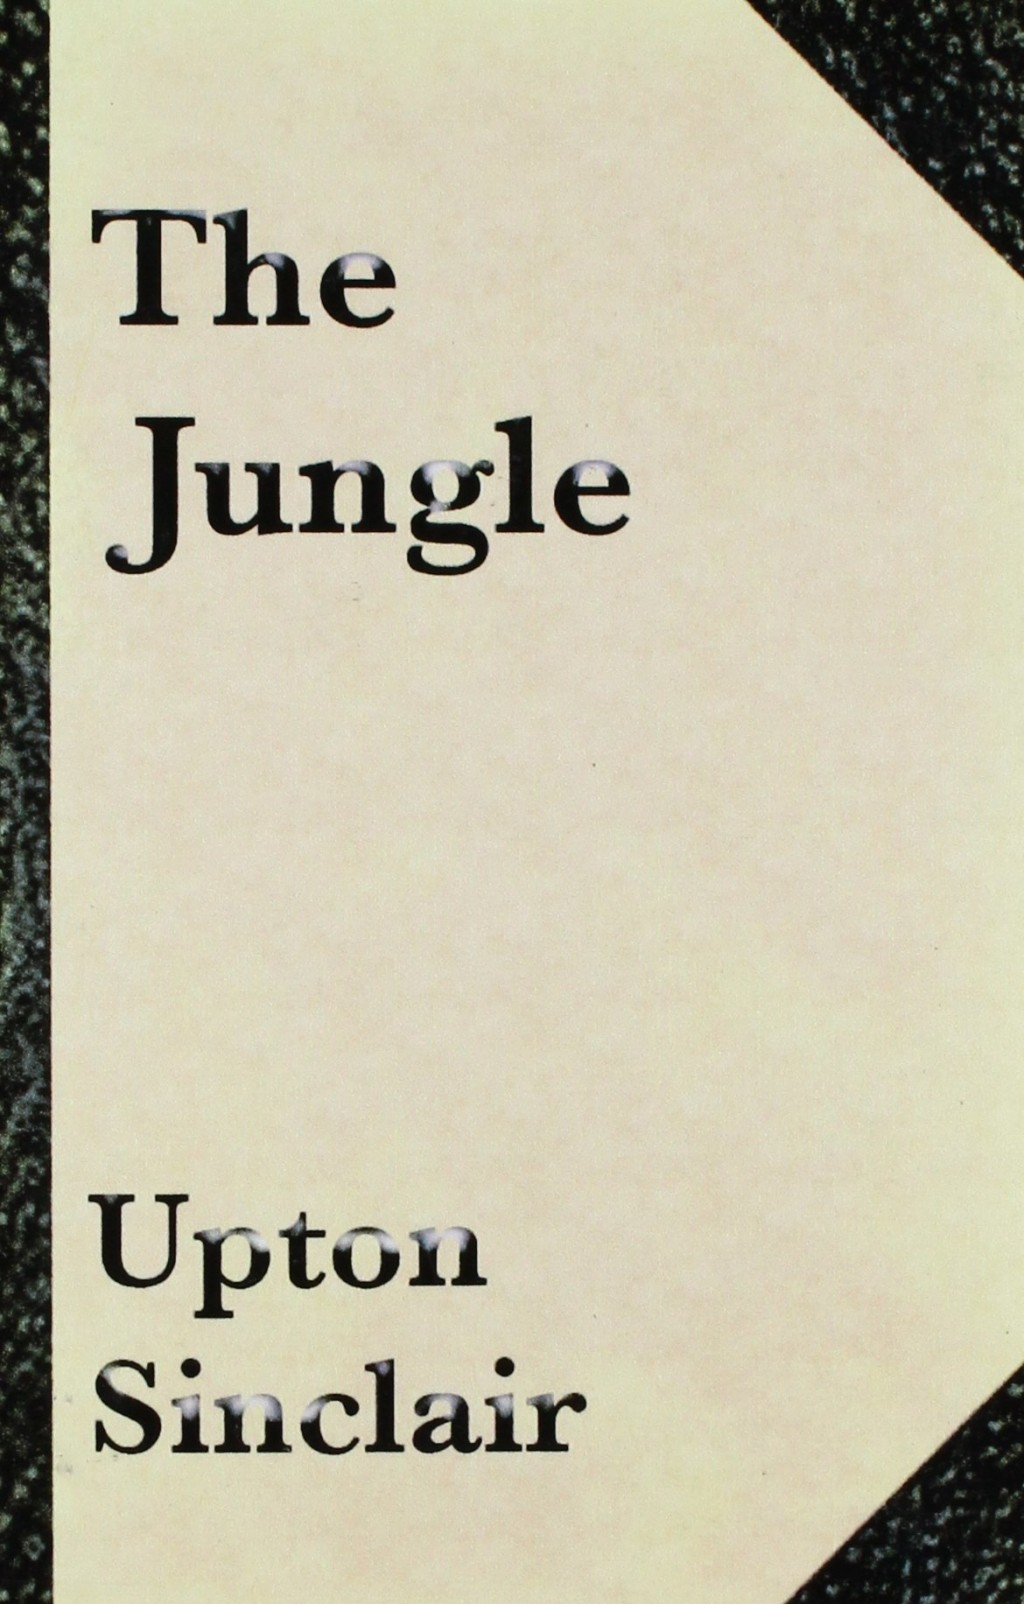 013 Essay Example 813xlafn0gl The Jungle Upton Sinclair Book Rare Review Large